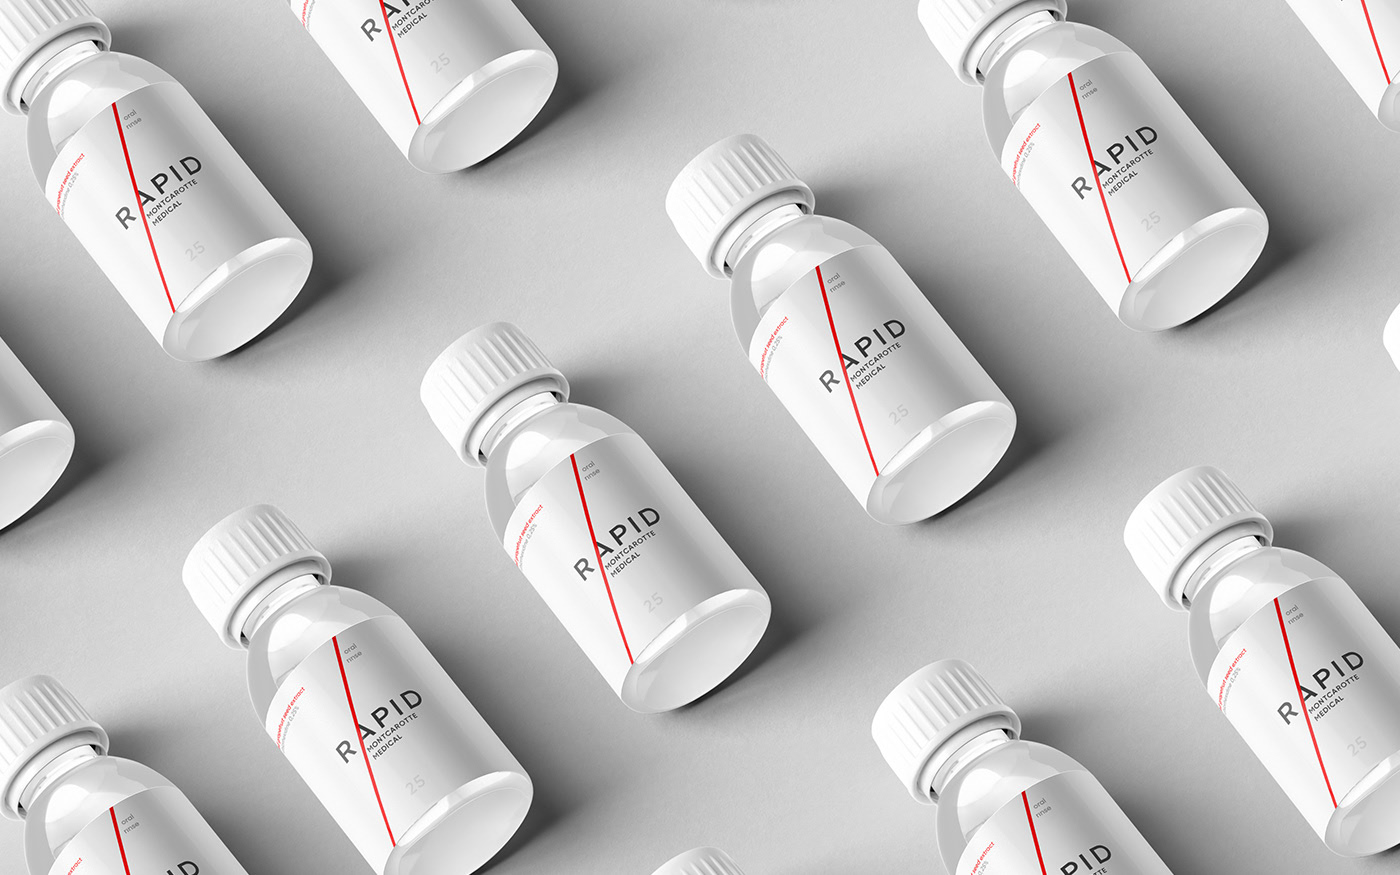 XAAS Creates New Brand and Packaging for Rapid